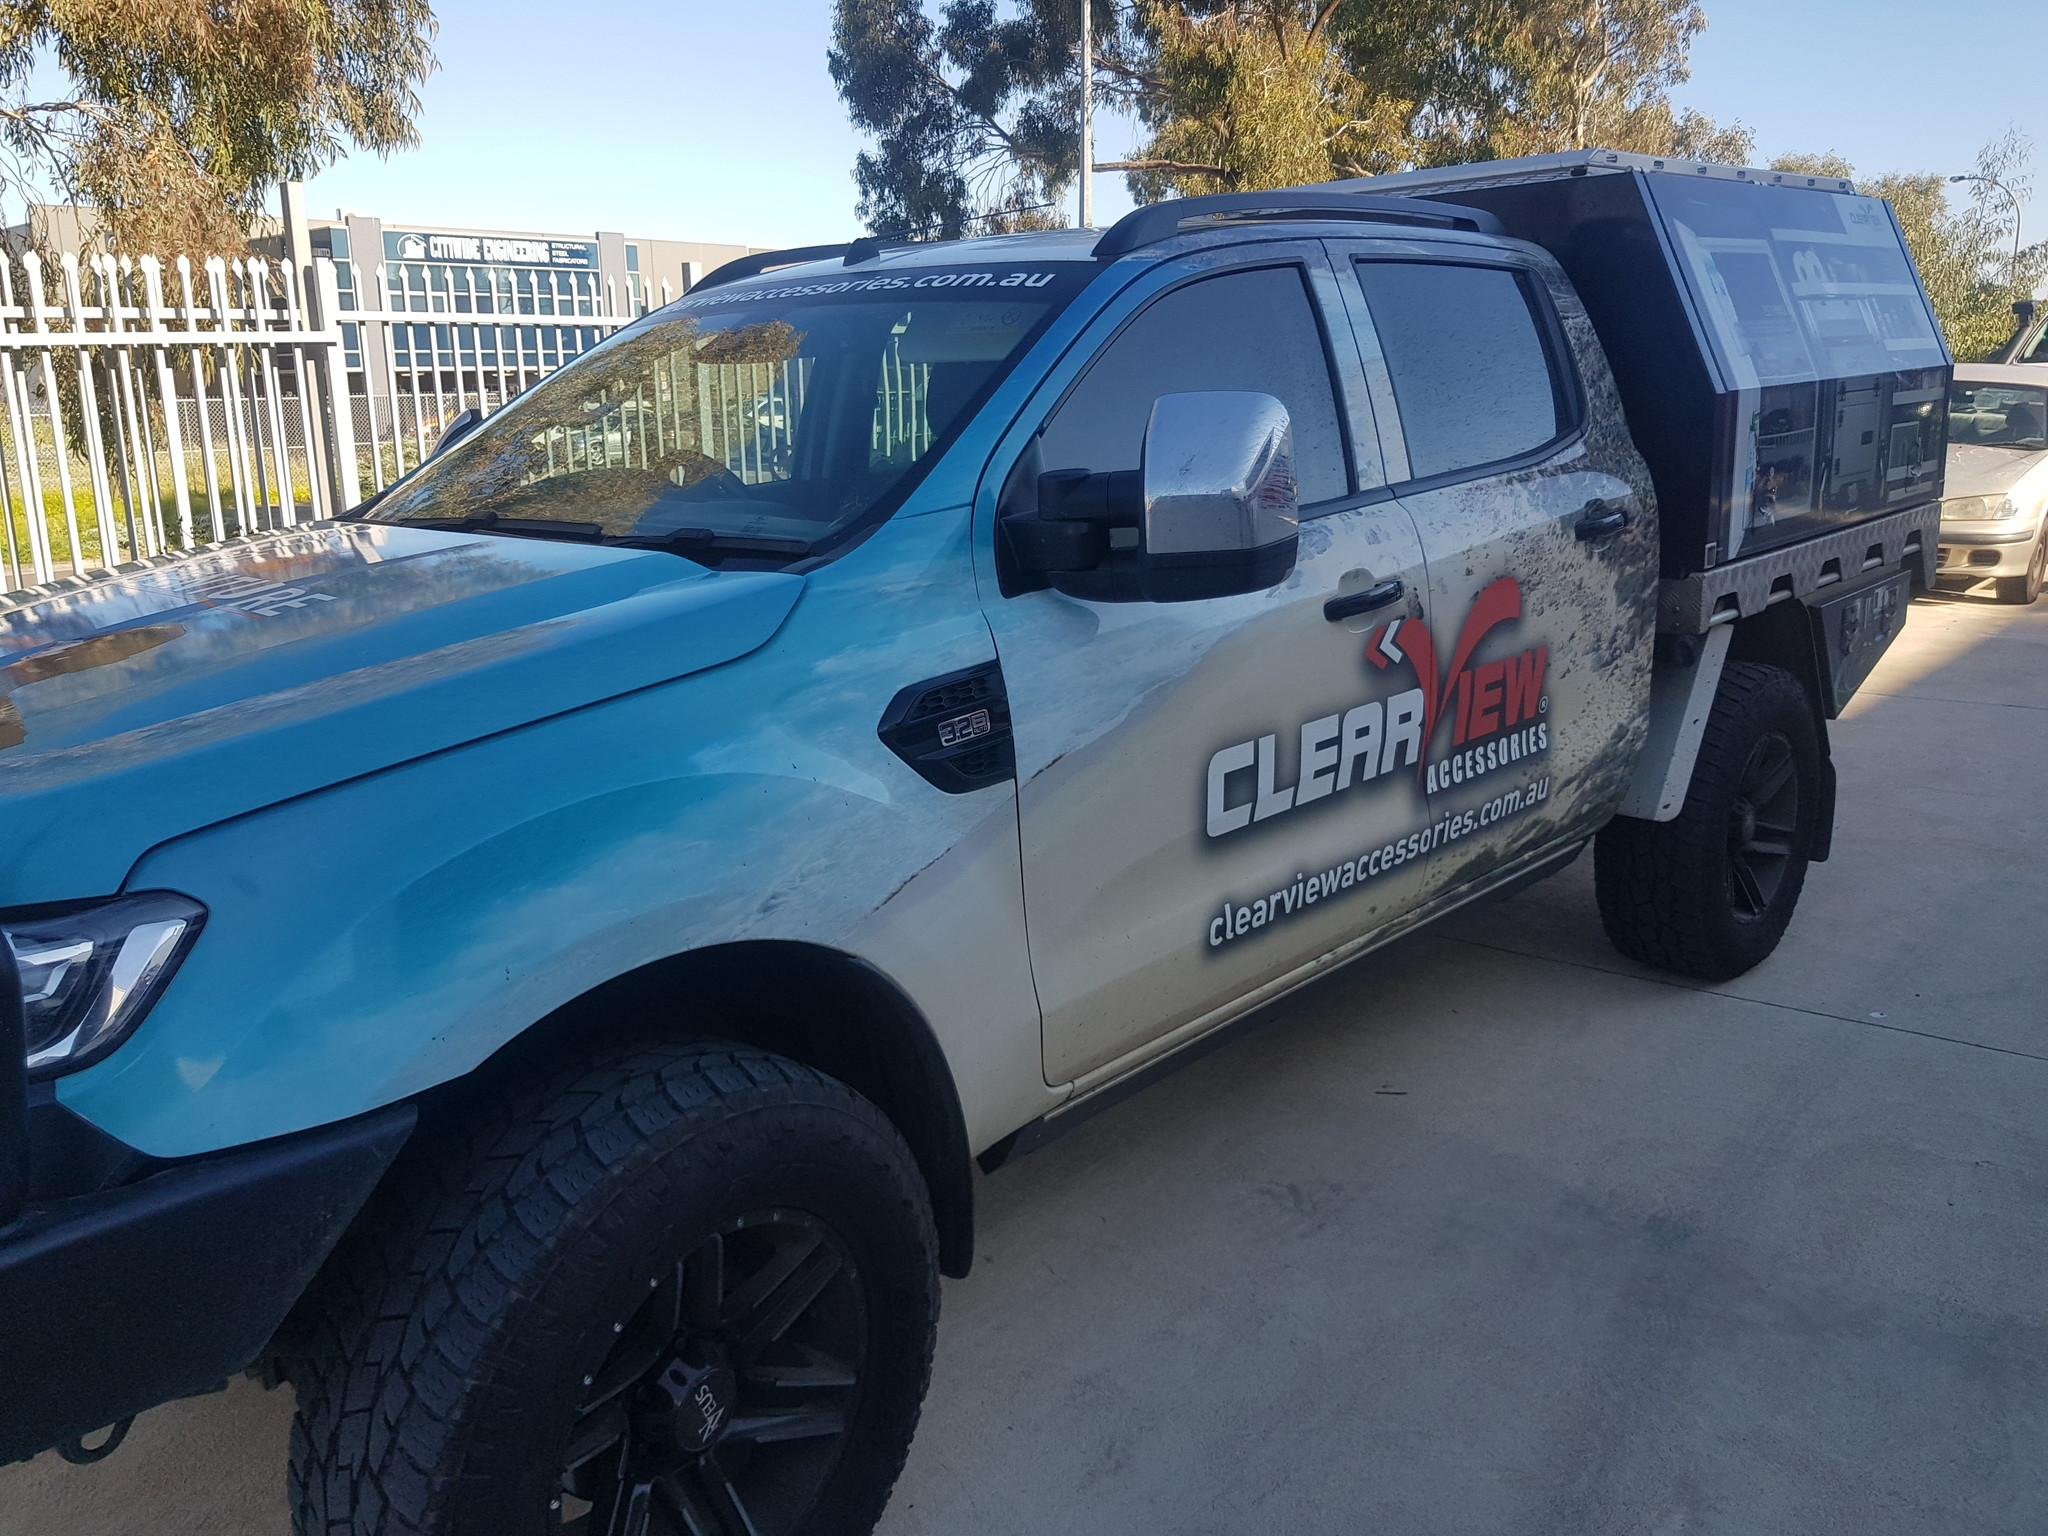 Toyota NEXT GENERATION: Clearview rétroviseurs miroir extra-large Ford Ranger PX